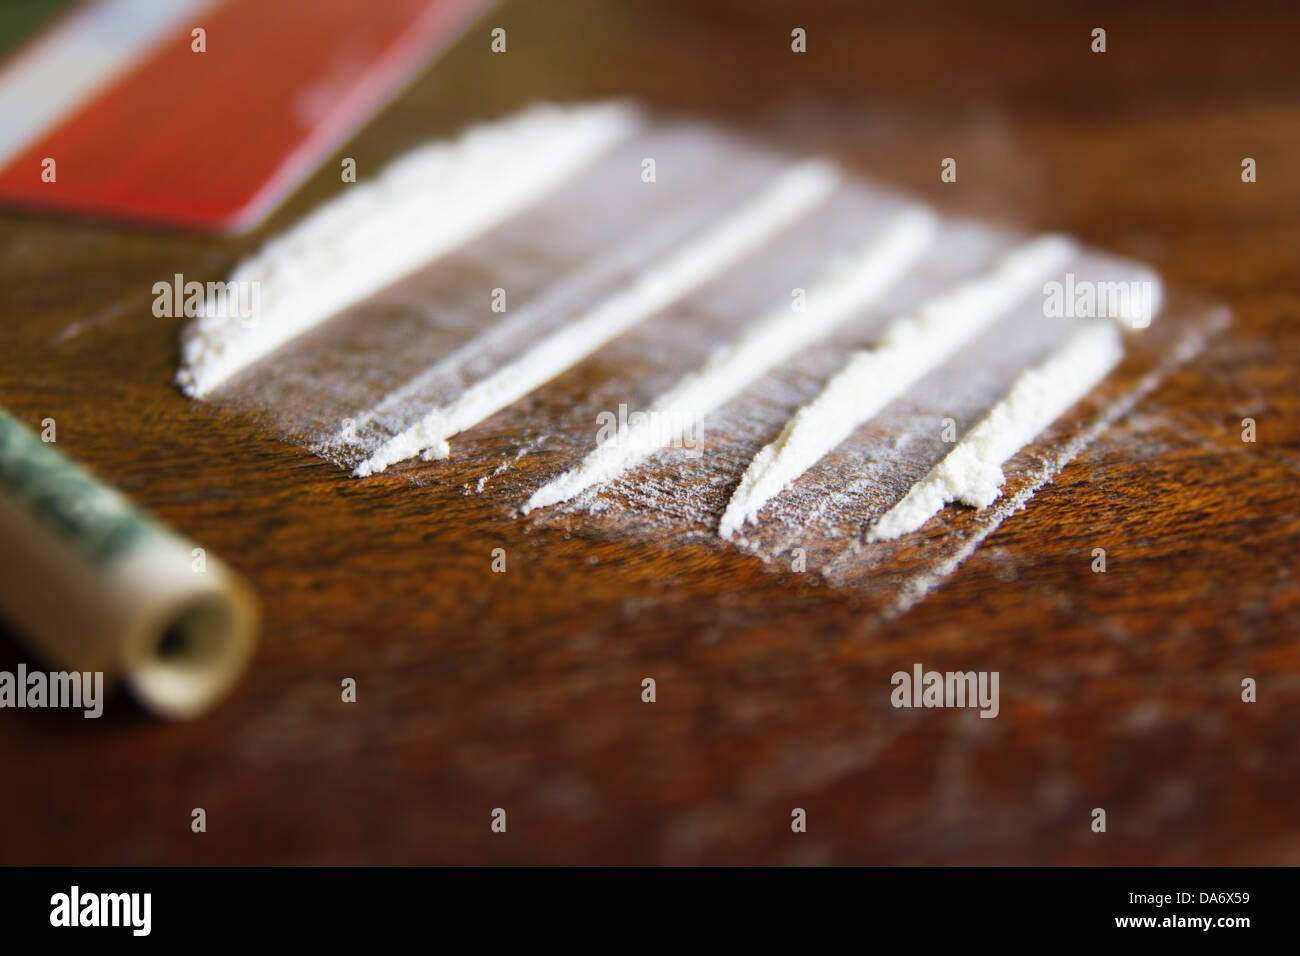 Drugs abuse is a social problem nowadays. Do not take drugs. - Stock Image